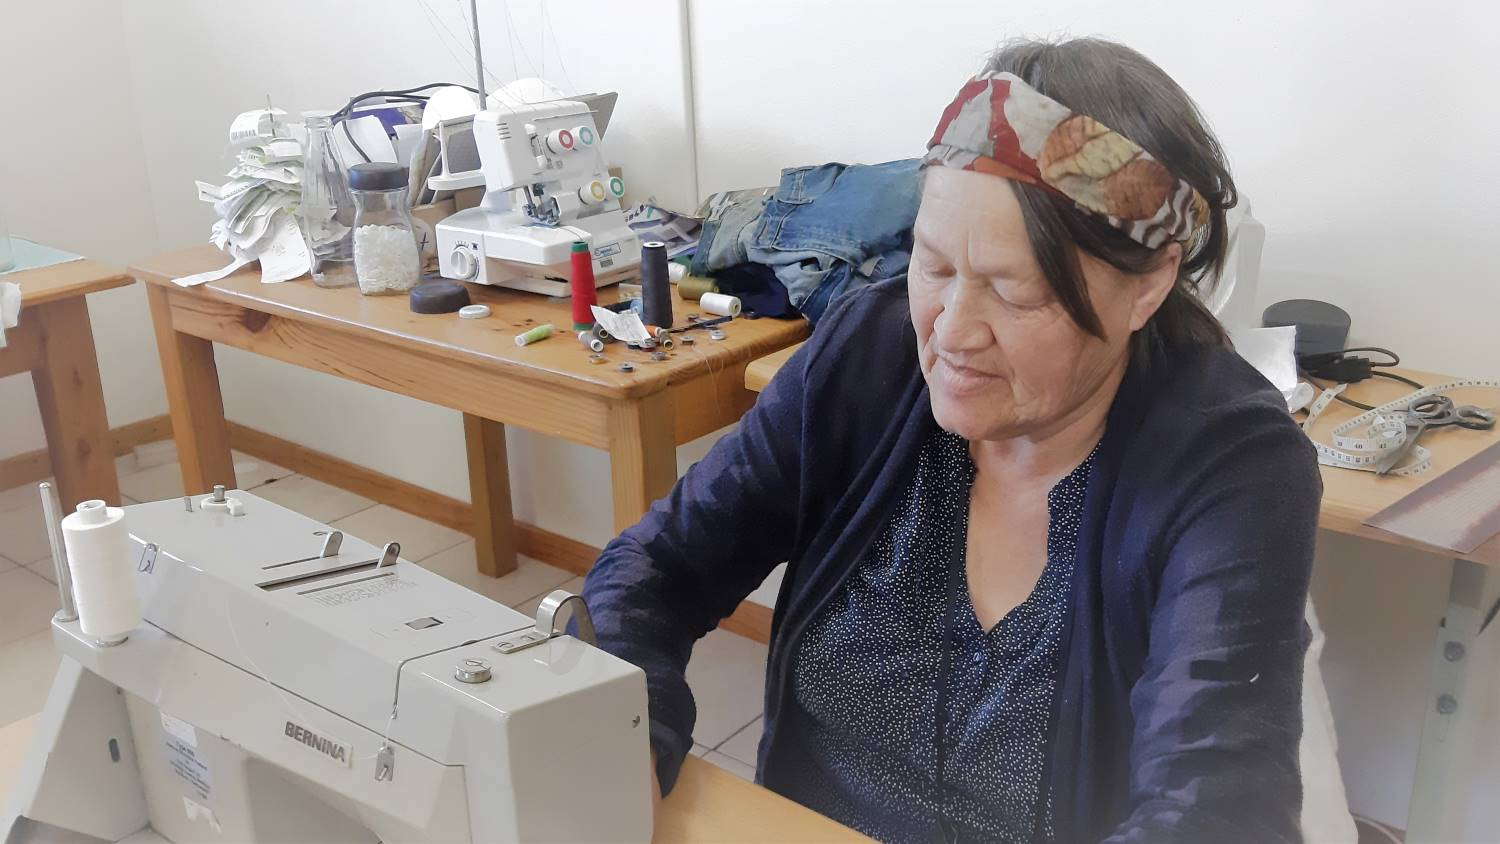 Cynthia Joubert - The Seamstress